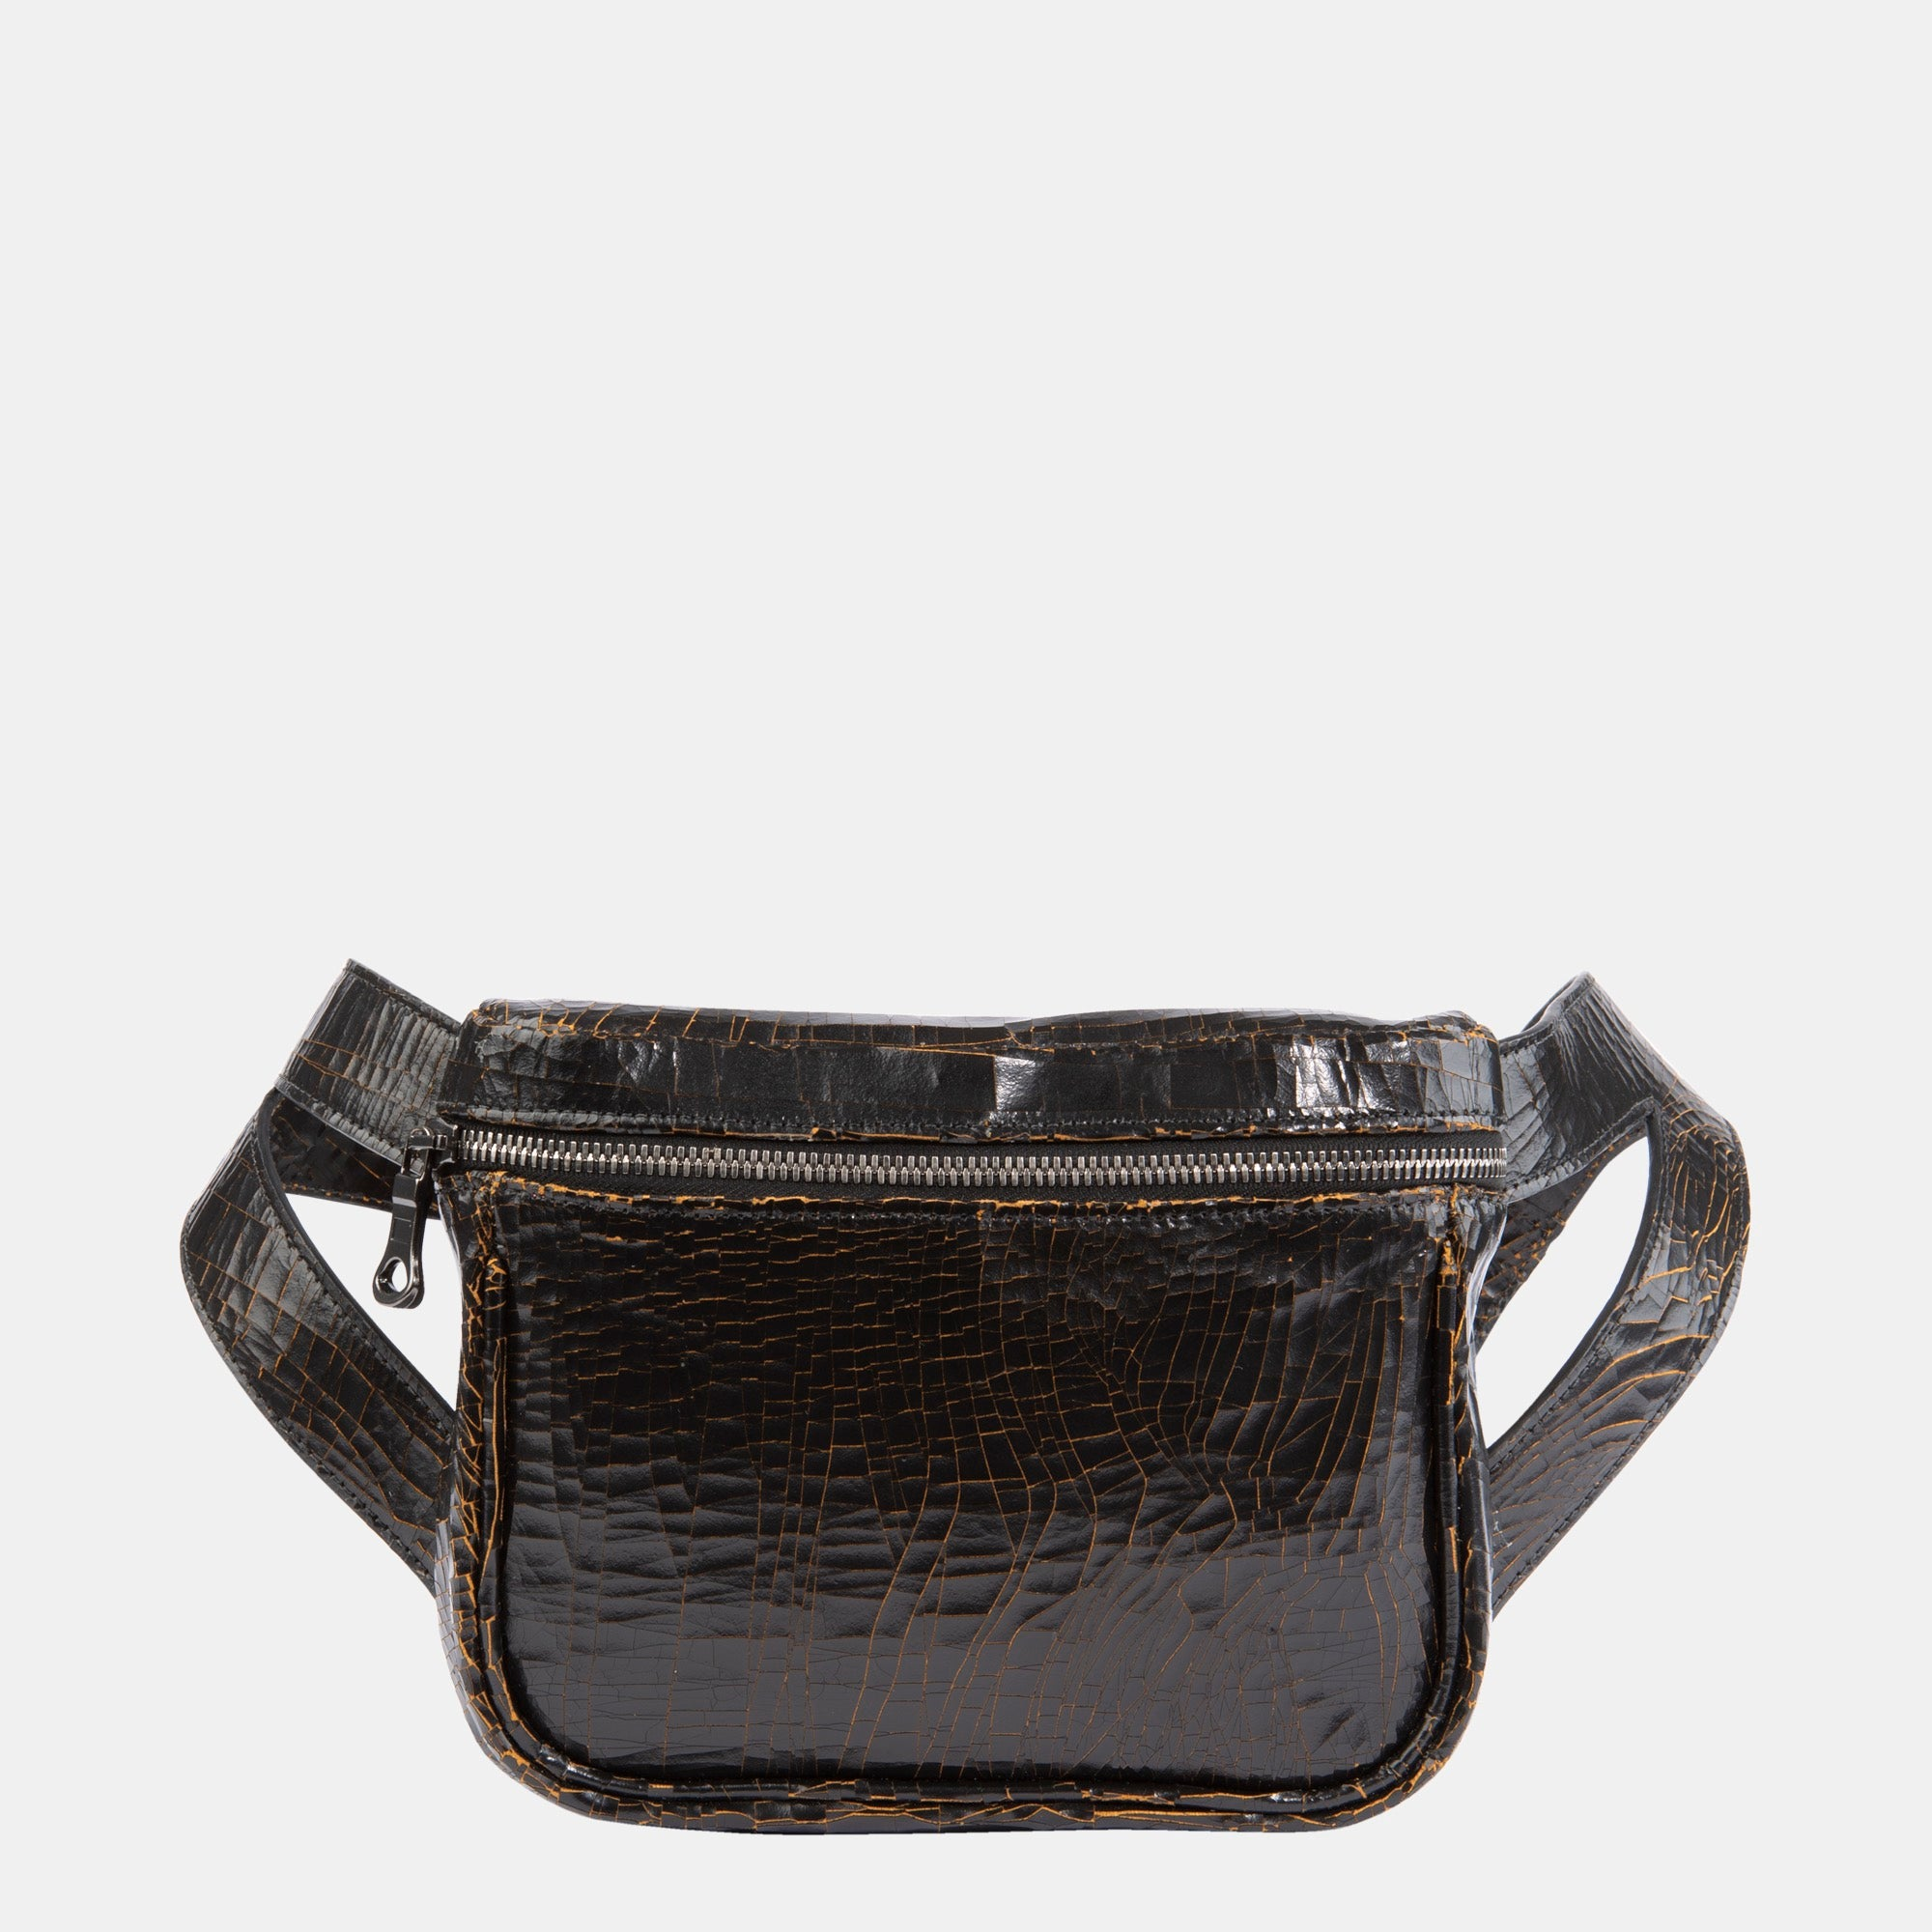 Luxury leather sustainable silk fanny pack belt bag crossbody